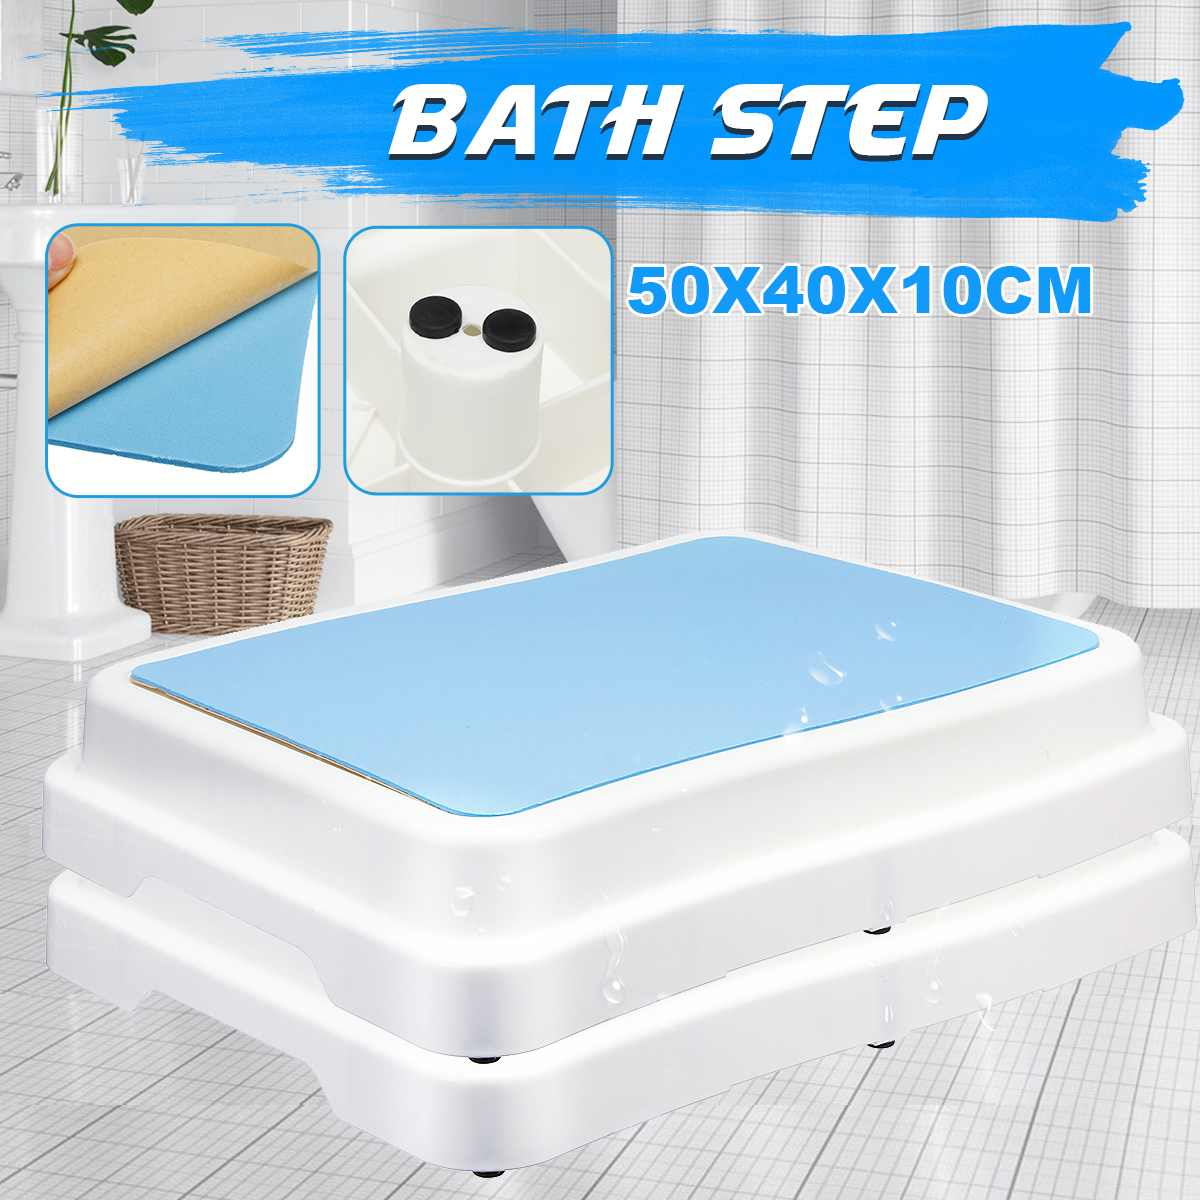 Stackable Bench Stool EVA Bathroom Feeding Hand Washing Bath Stepping Footstool Old Man Baby Non-slip Foot Stool Large Platform-BUYALL20